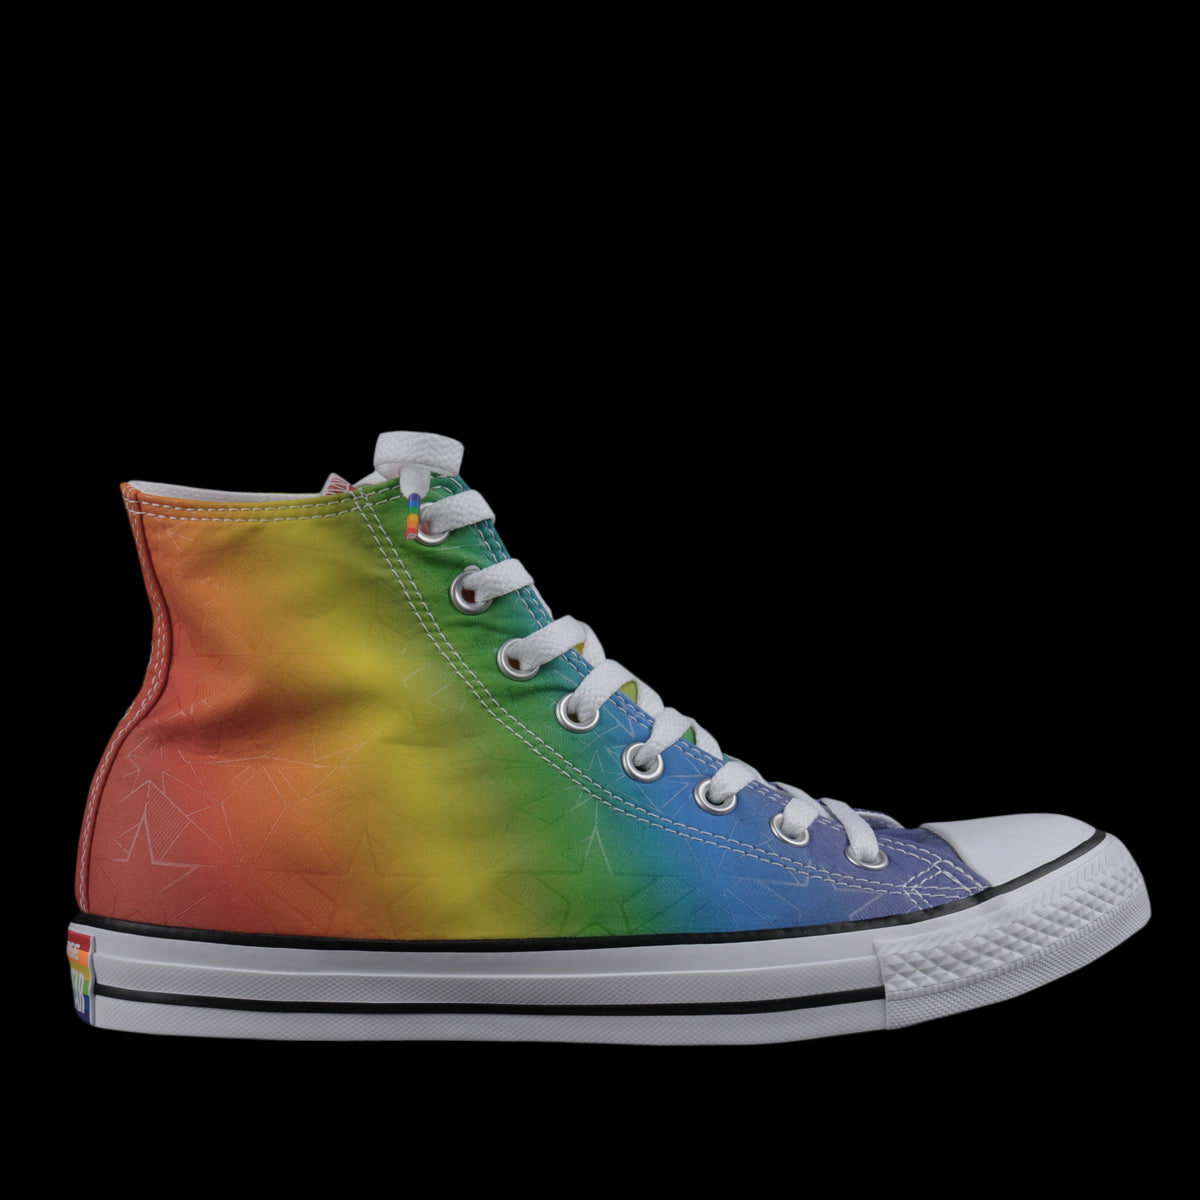 d1bde4c2514 Converse - Chuck Taylor All Star Hi Pride in Rainbow - UNIONMADE